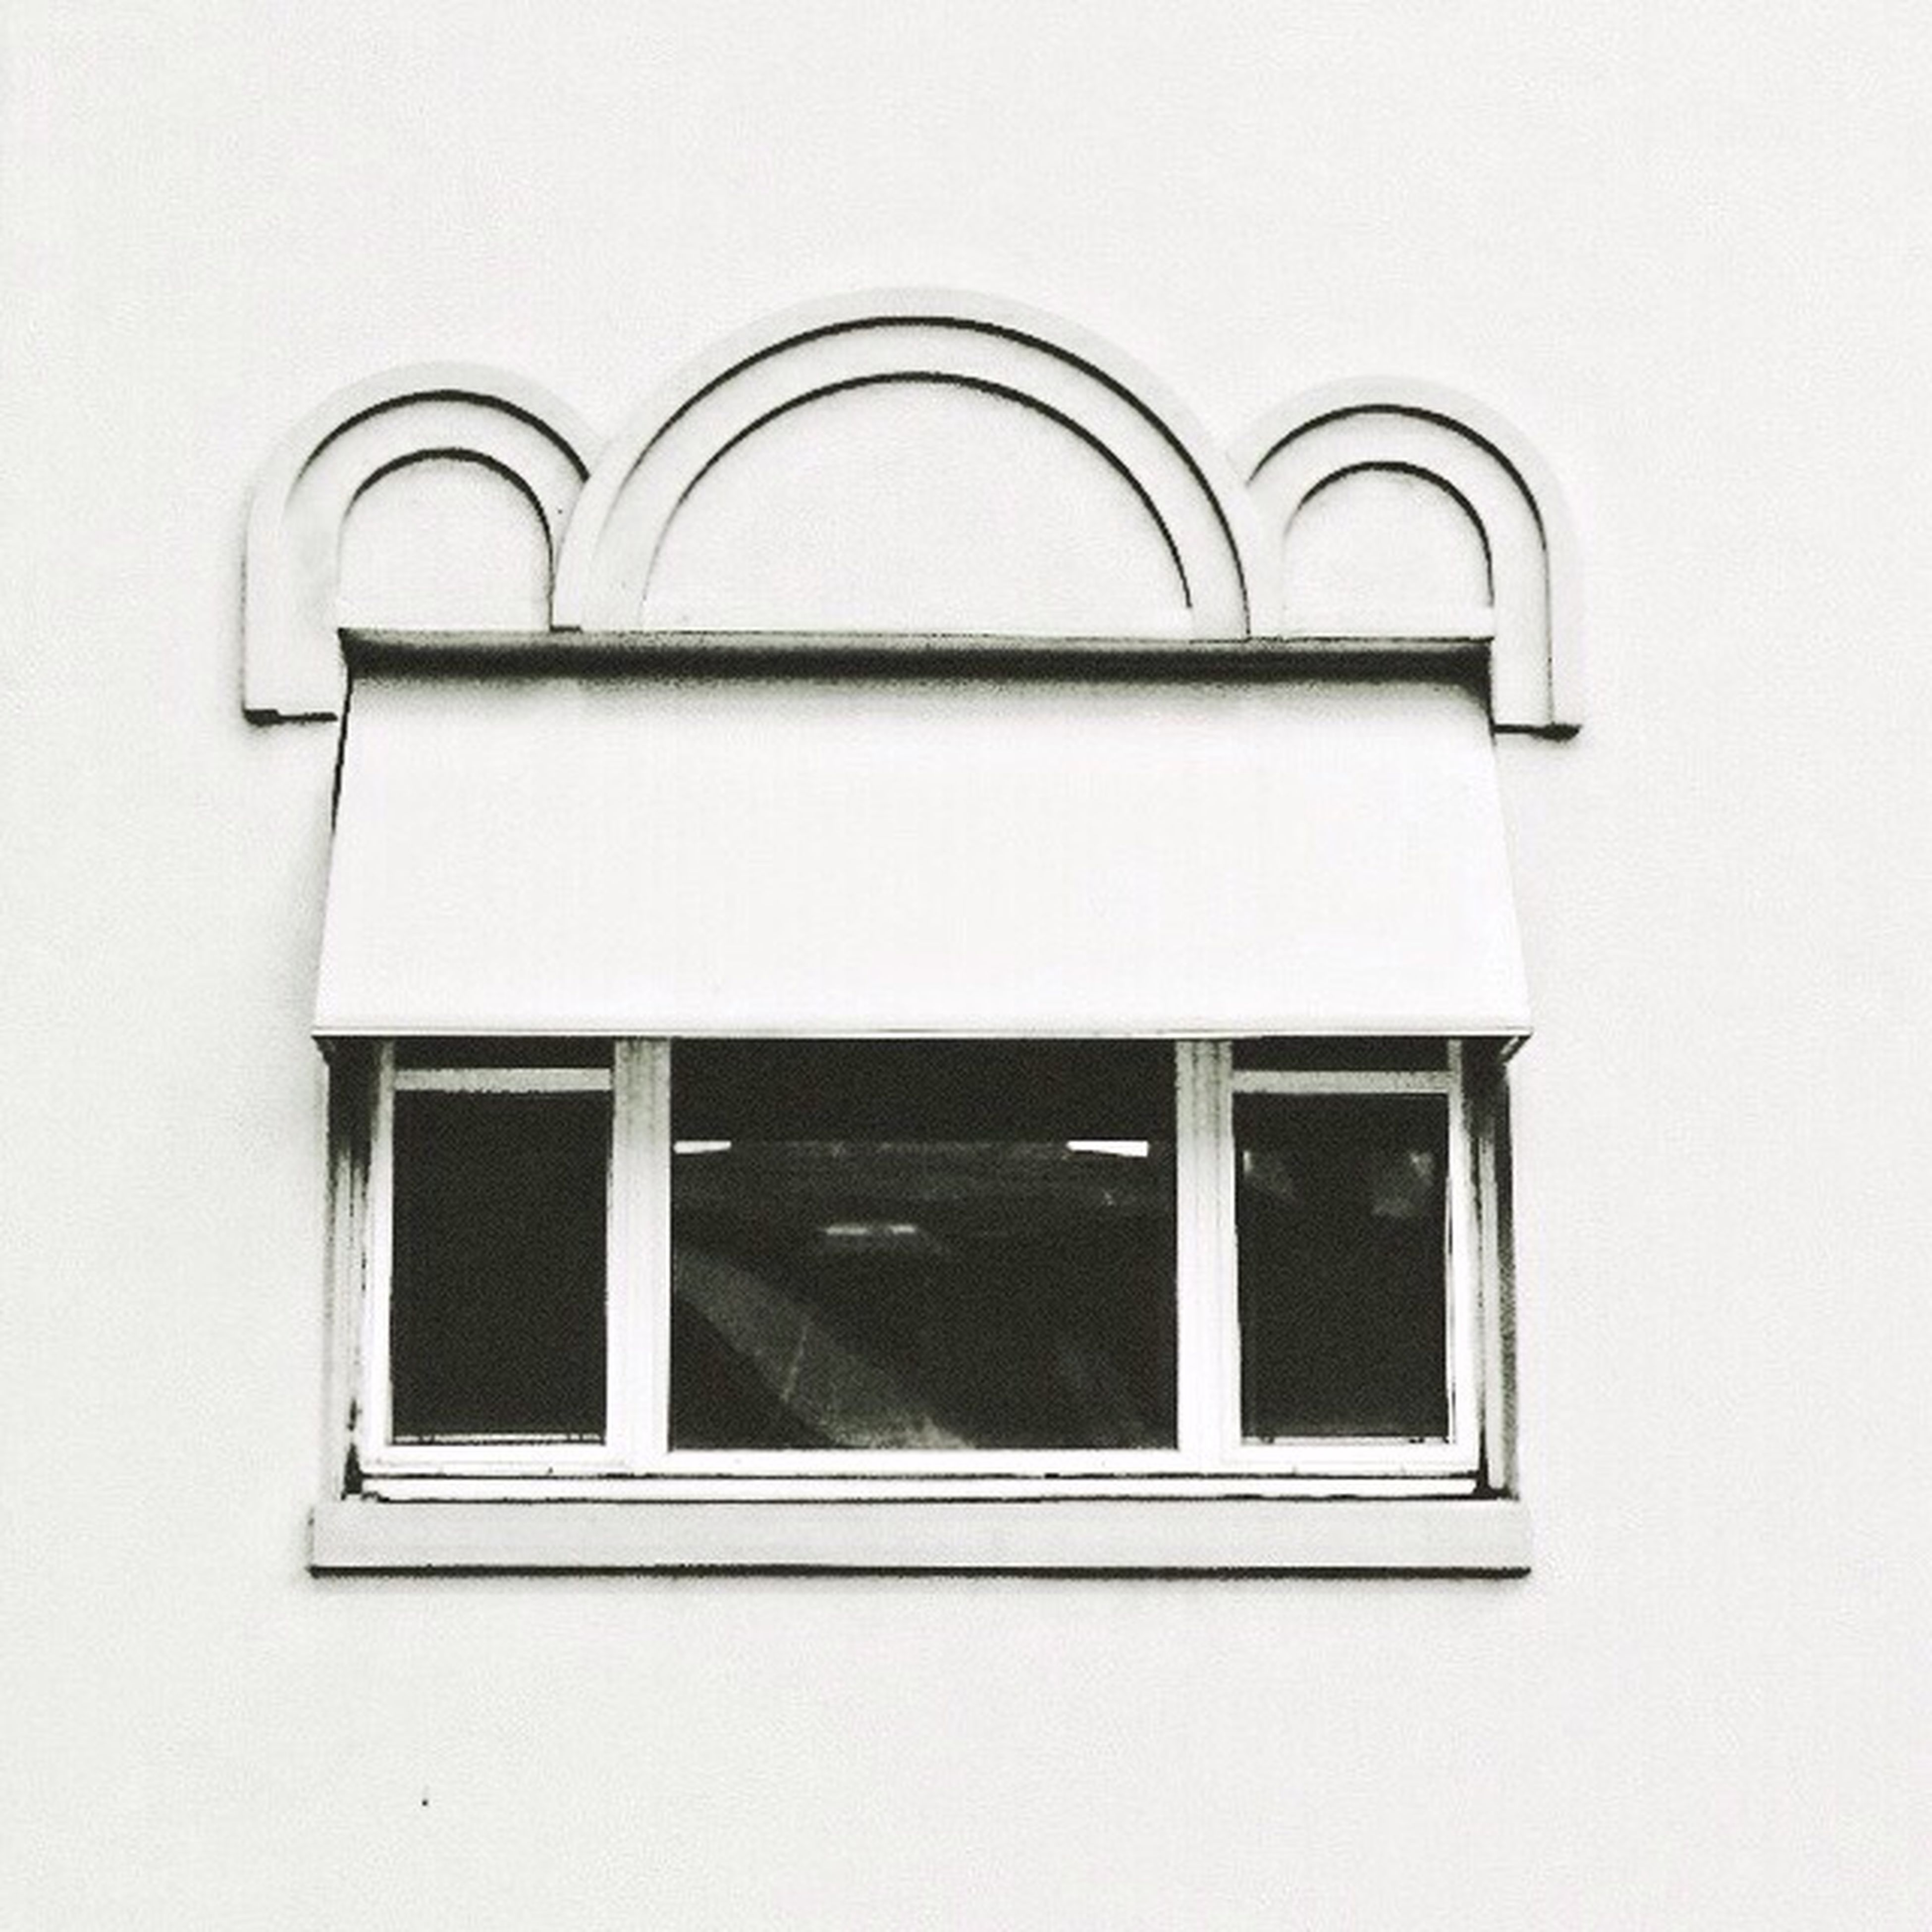 window, architecture, built structure, building exterior, low angle view, house, indoors, copy space, glass - material, closed, no people, building, residential structure, geometric shape, residential building, wall - building feature, wall, day, open, pattern